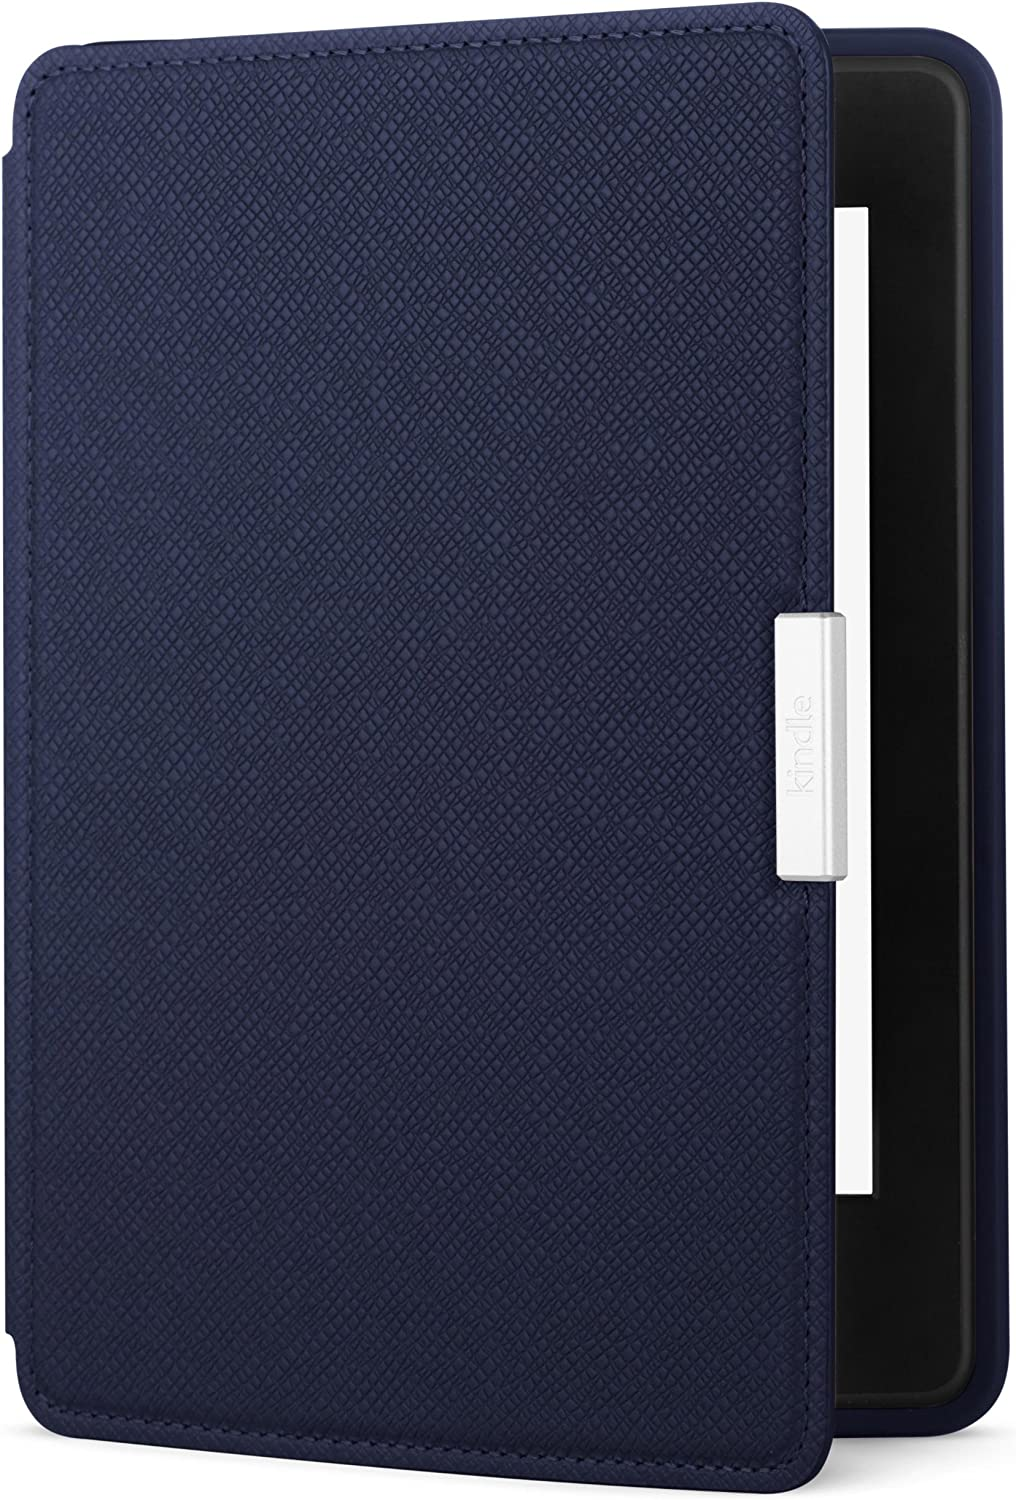 Amazon Kindle Paperwhite Leather Case, Ink Blue - fits all Paperwhite generations prior to 2018(Will not fit All-new Paperwhite 10th generation)